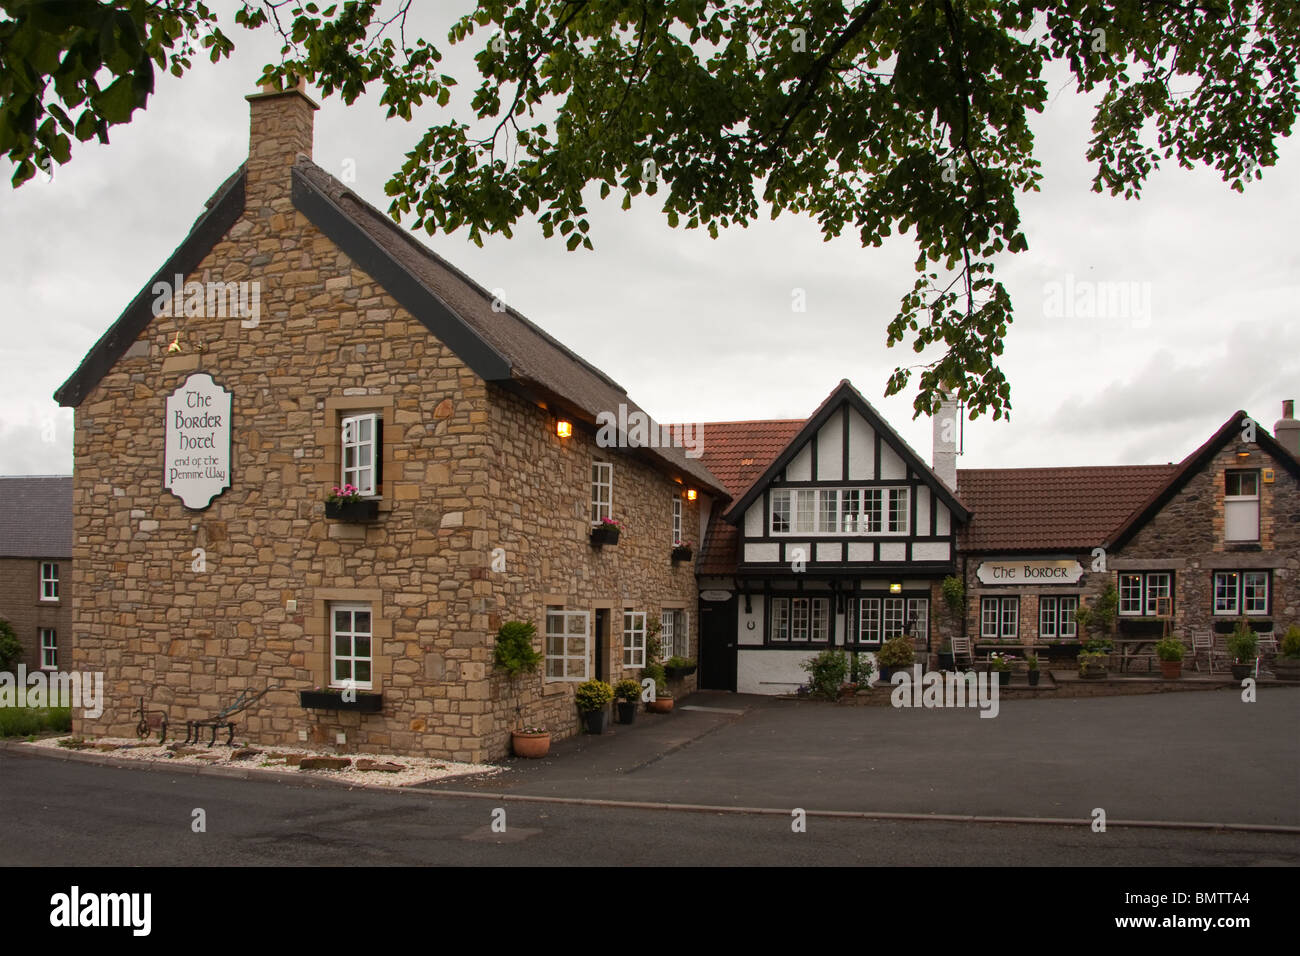 The Border Hotel, Kirk Yetholm, end of the Pennine Way - Stock Image